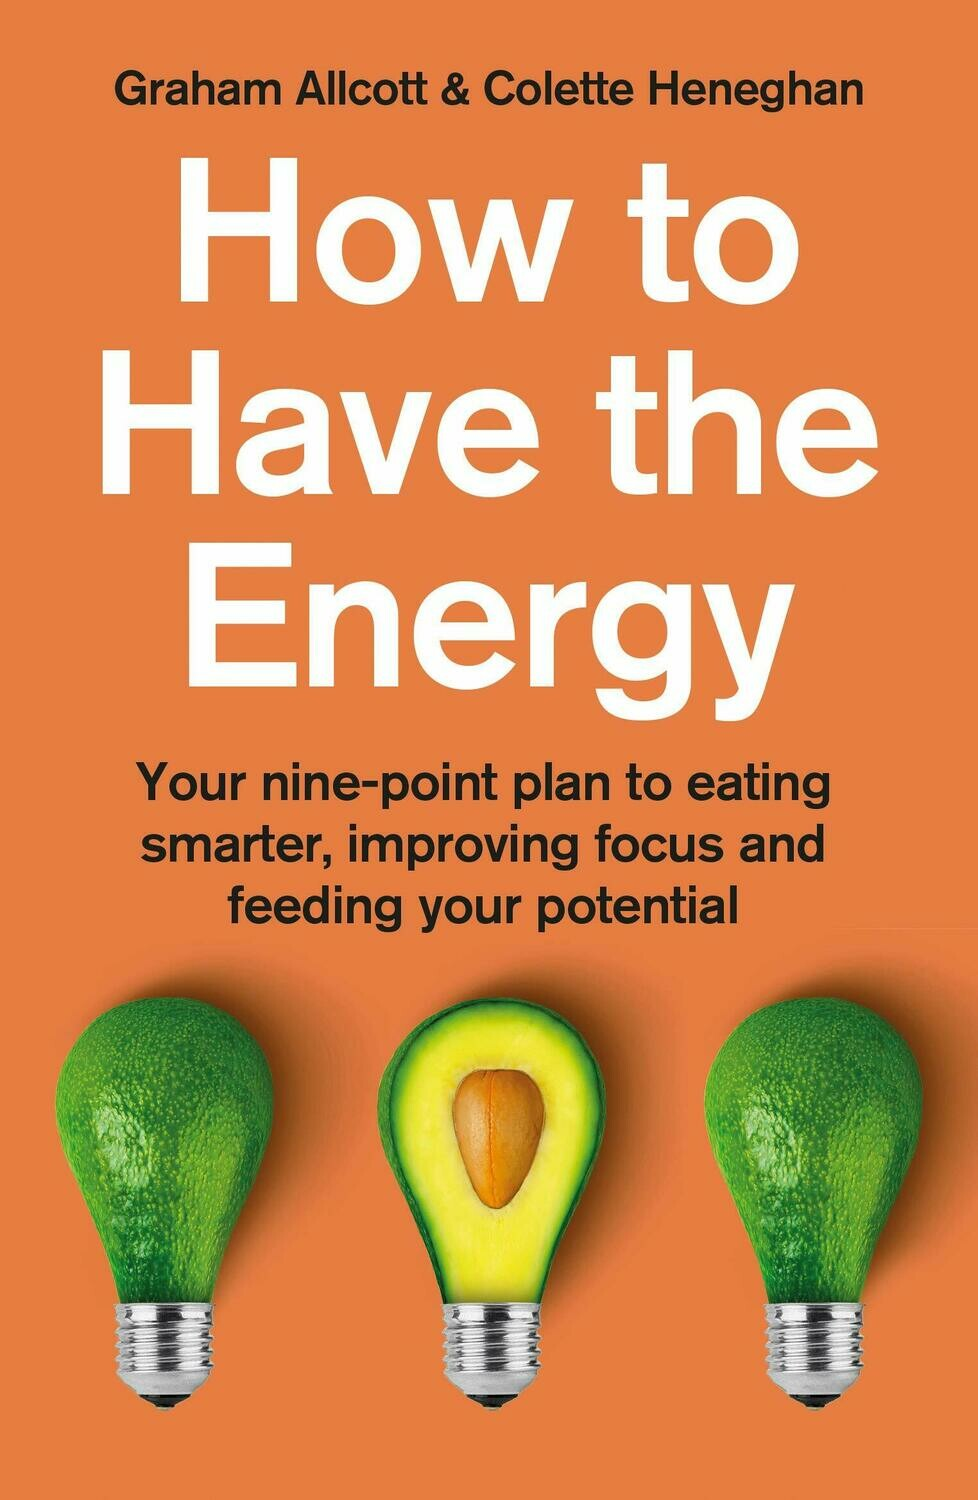 How to Have the Energy: Your nine-point plan to eating smarter, improving focus and feeding your potential